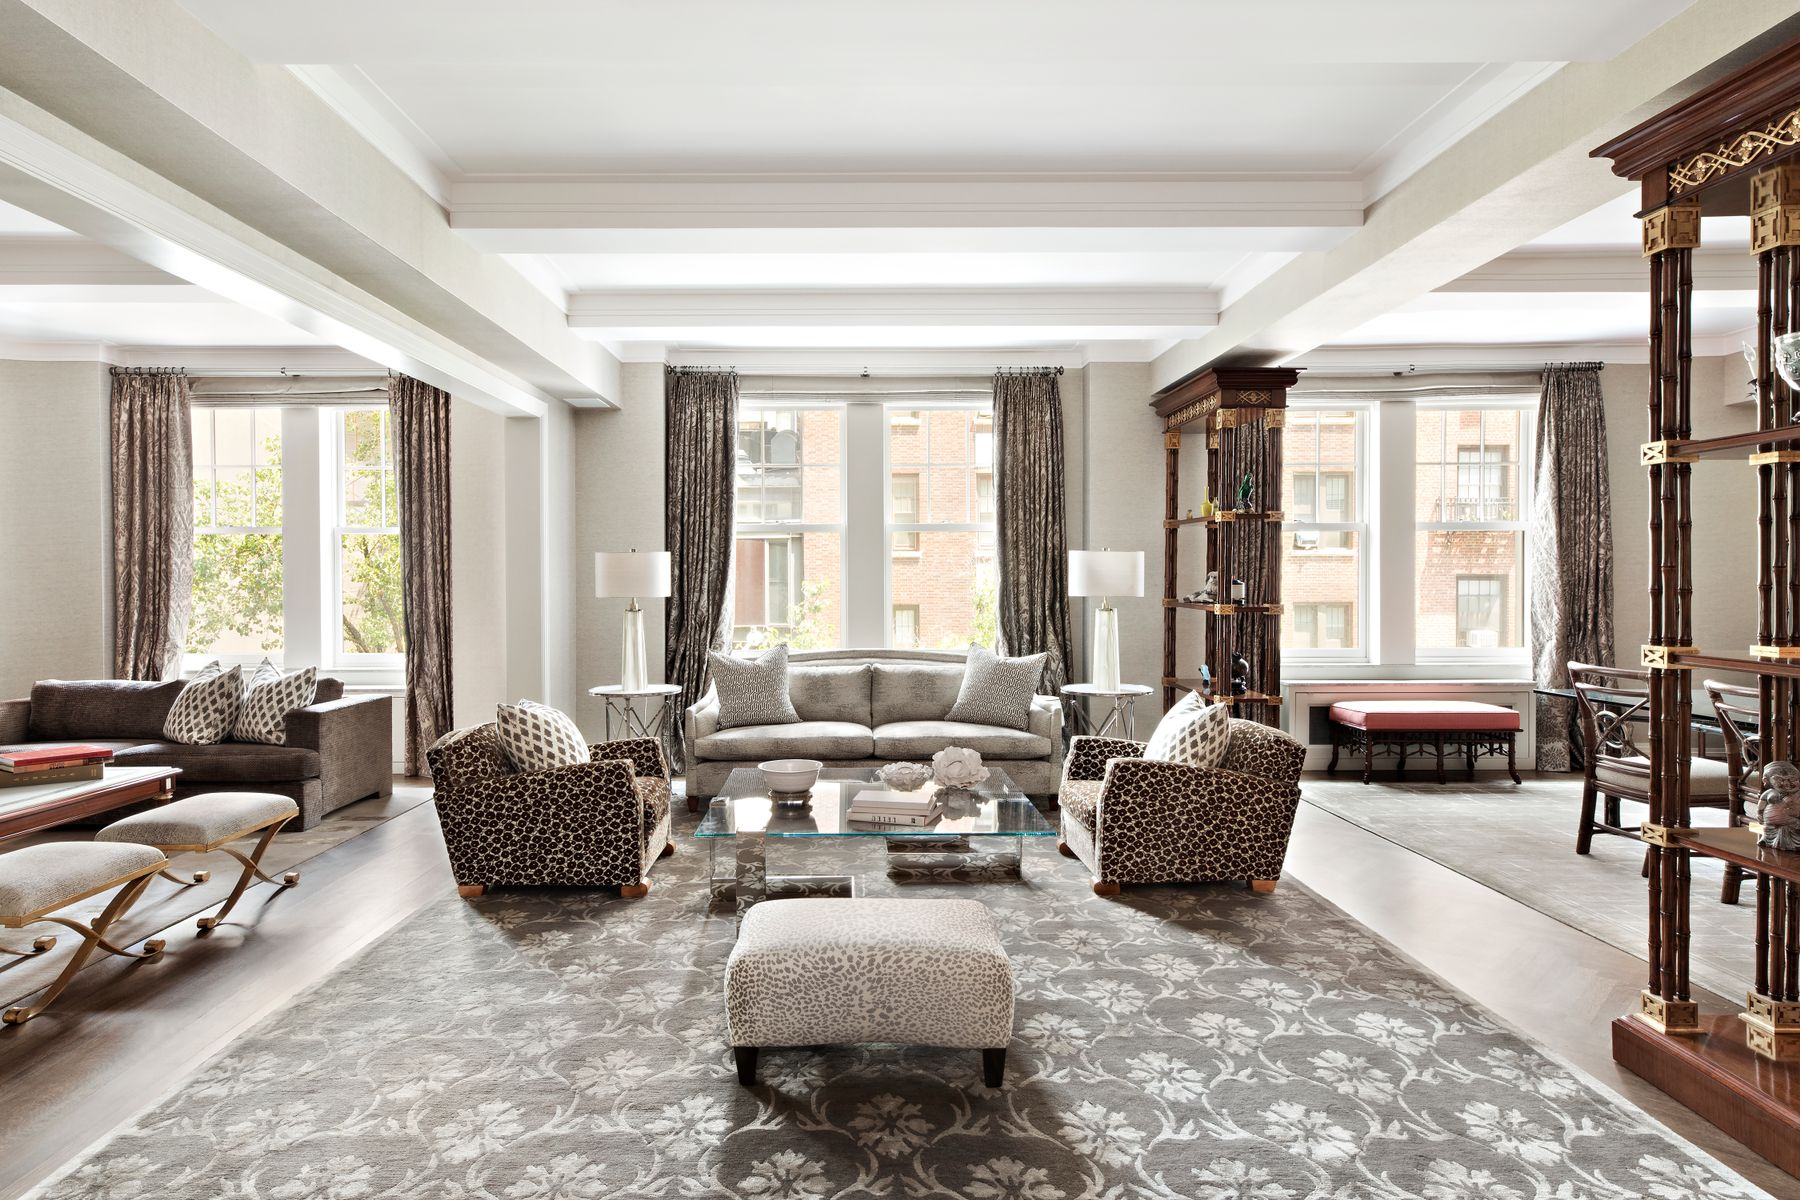 Co-op Properties for Sale at 575 Park Avenue, 206-208 575 Park Avenue 206-208 New York, New York 10065 United States